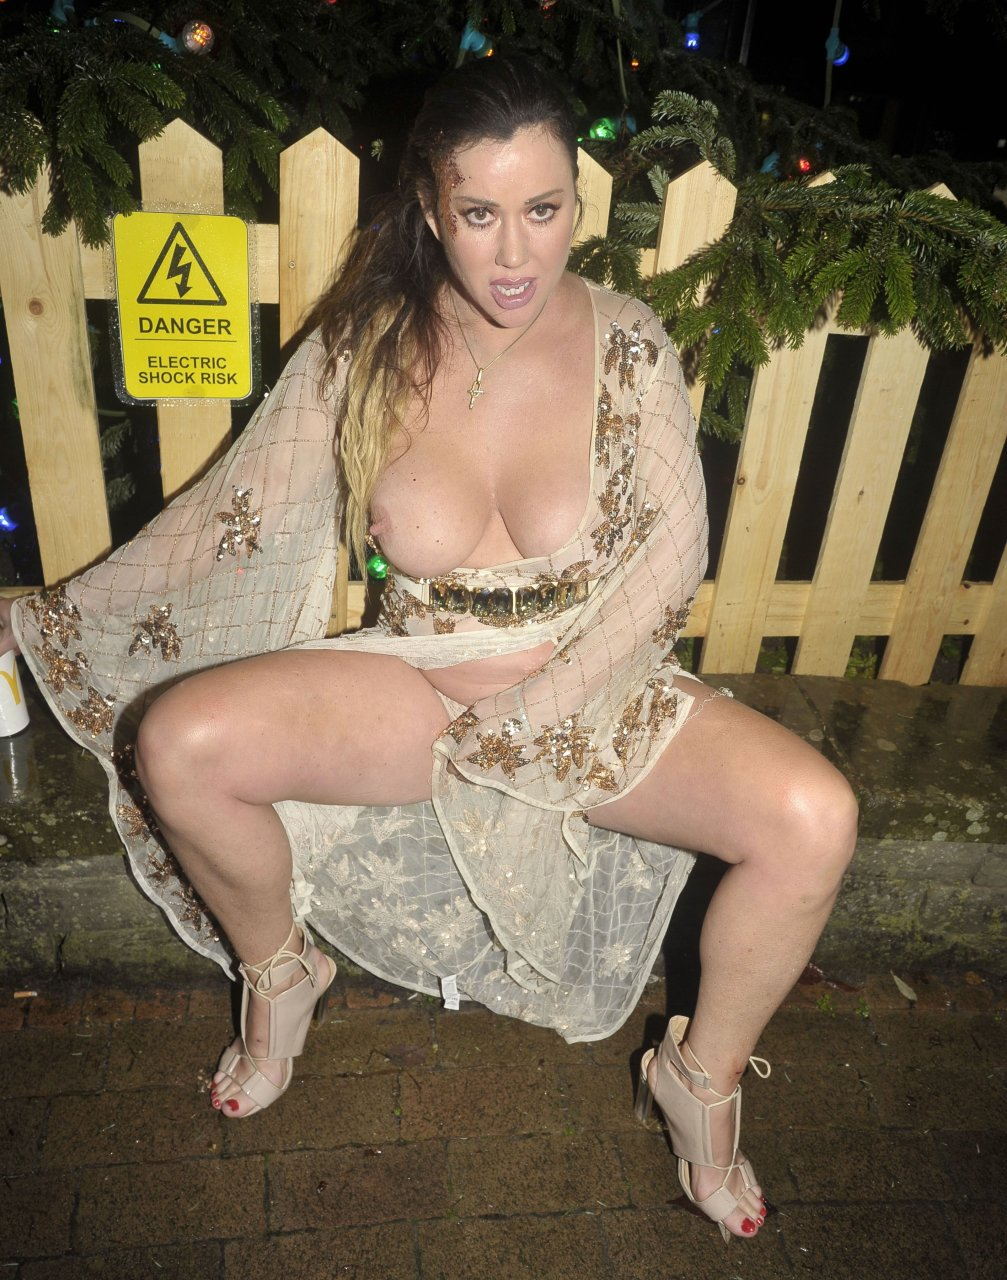 Lisa appleton braless 6 pics nudes (67 pictures)